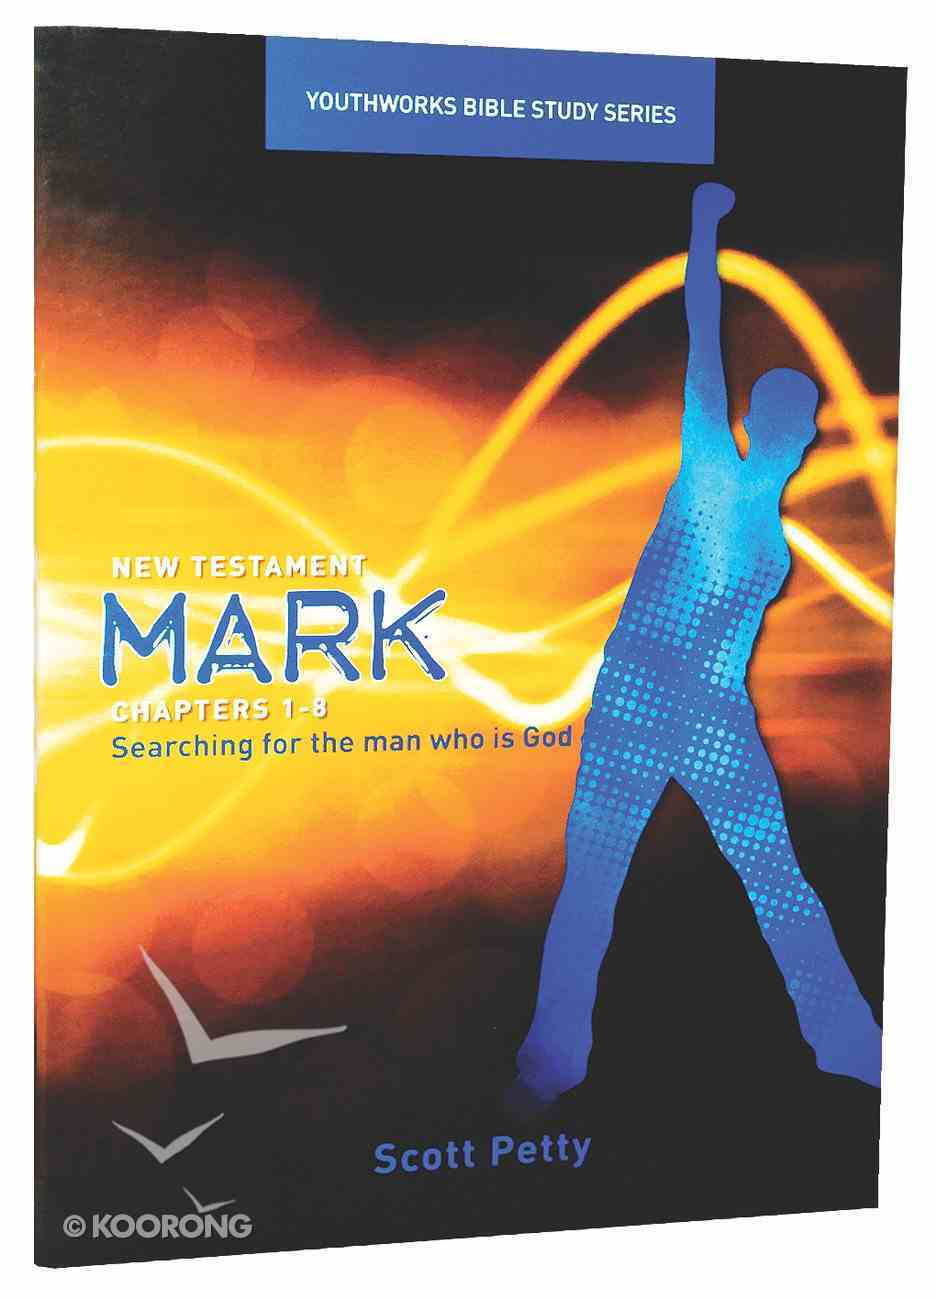 Mark, Searching For the Man Who is God (Youthworks Bible Study Series) Paperback